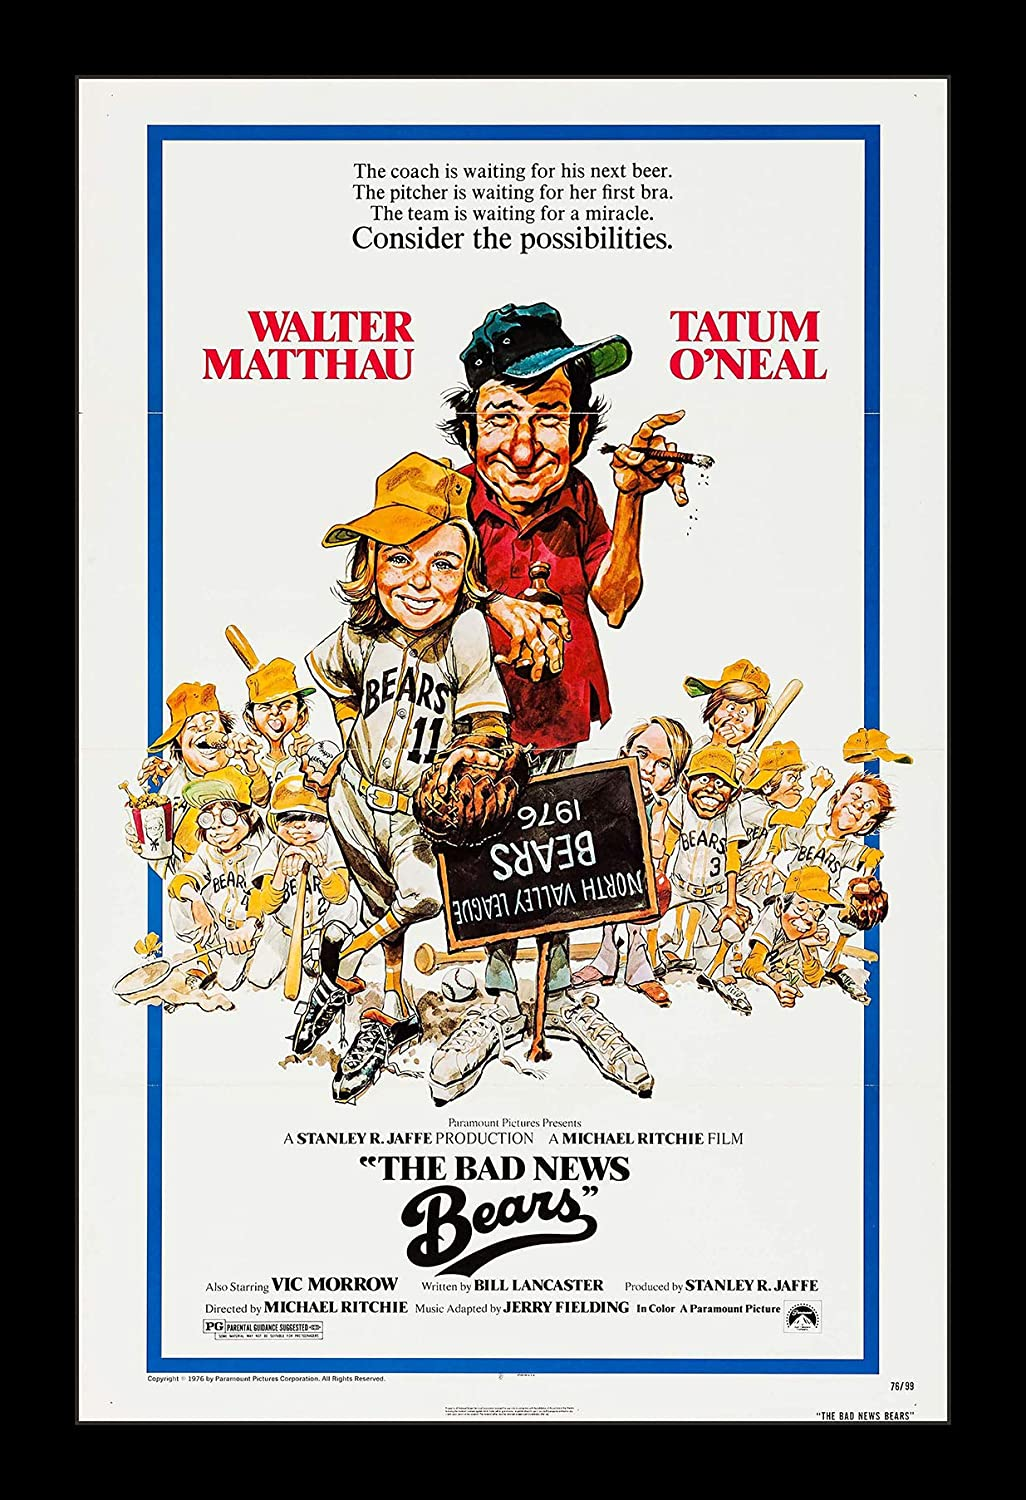 Wallspace 11x17 Framed Movie Poster - The Bad News Bears